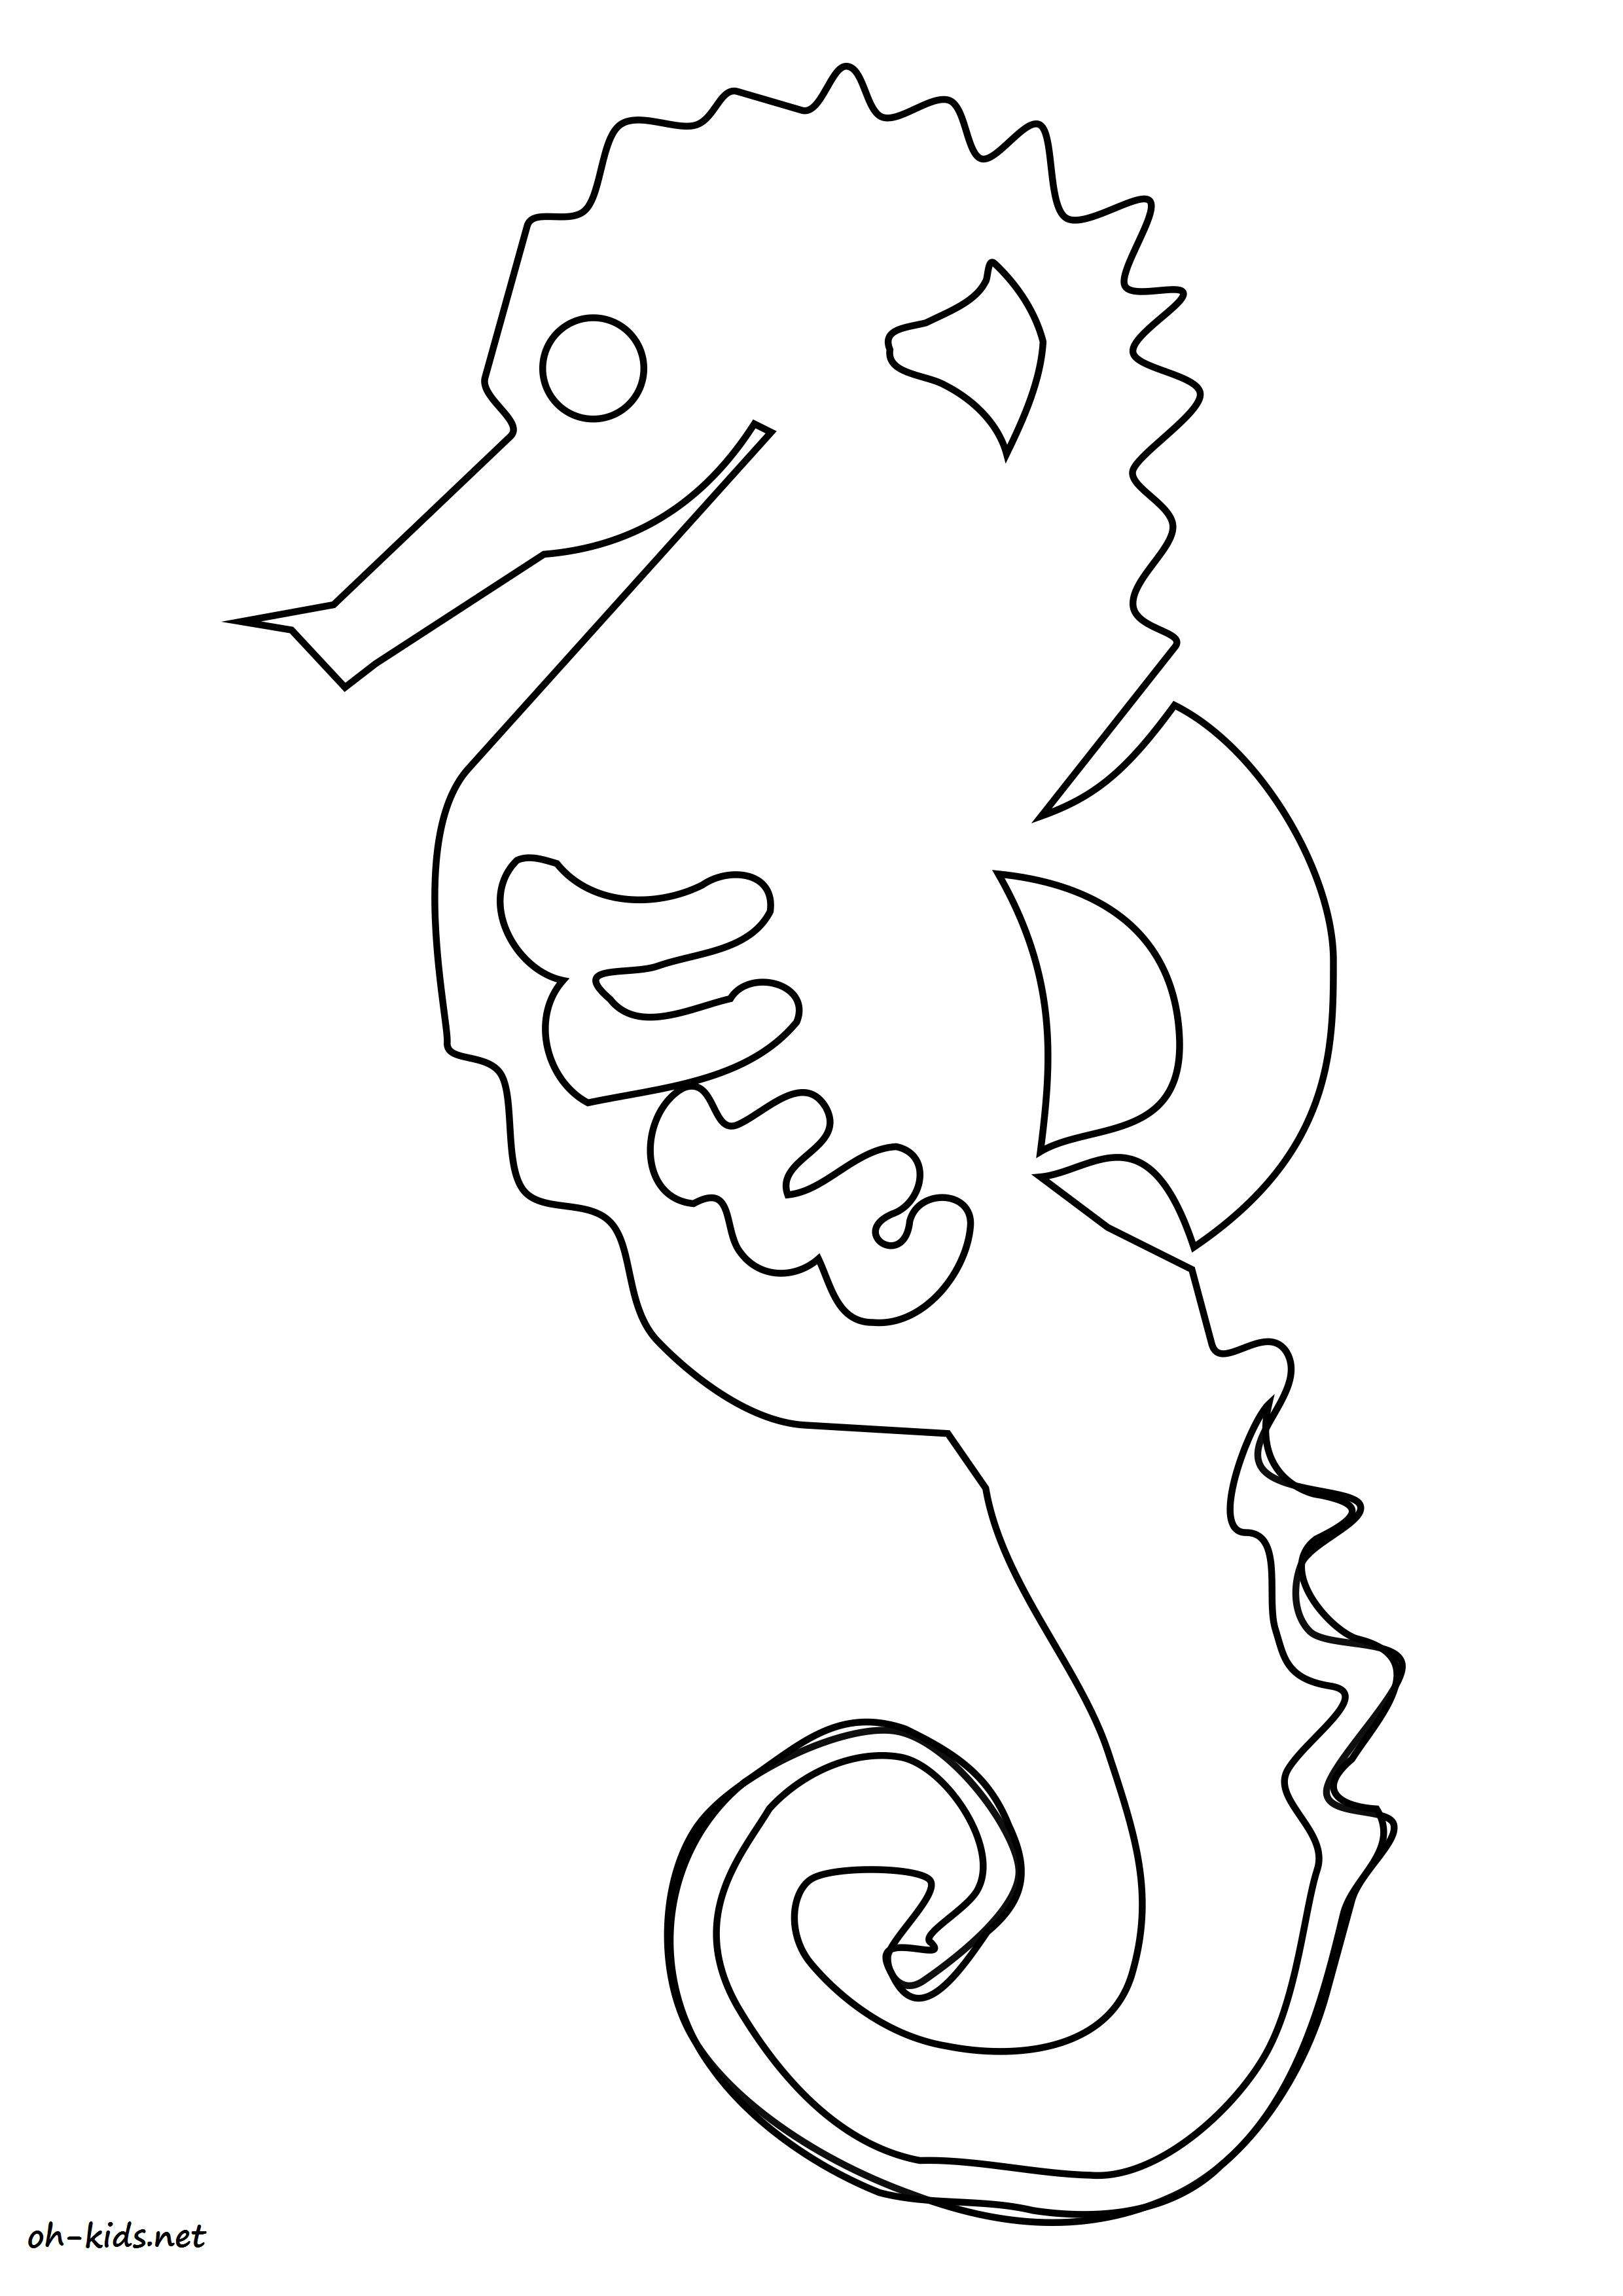 Coloriage Hippocampe Oh Kids Fr